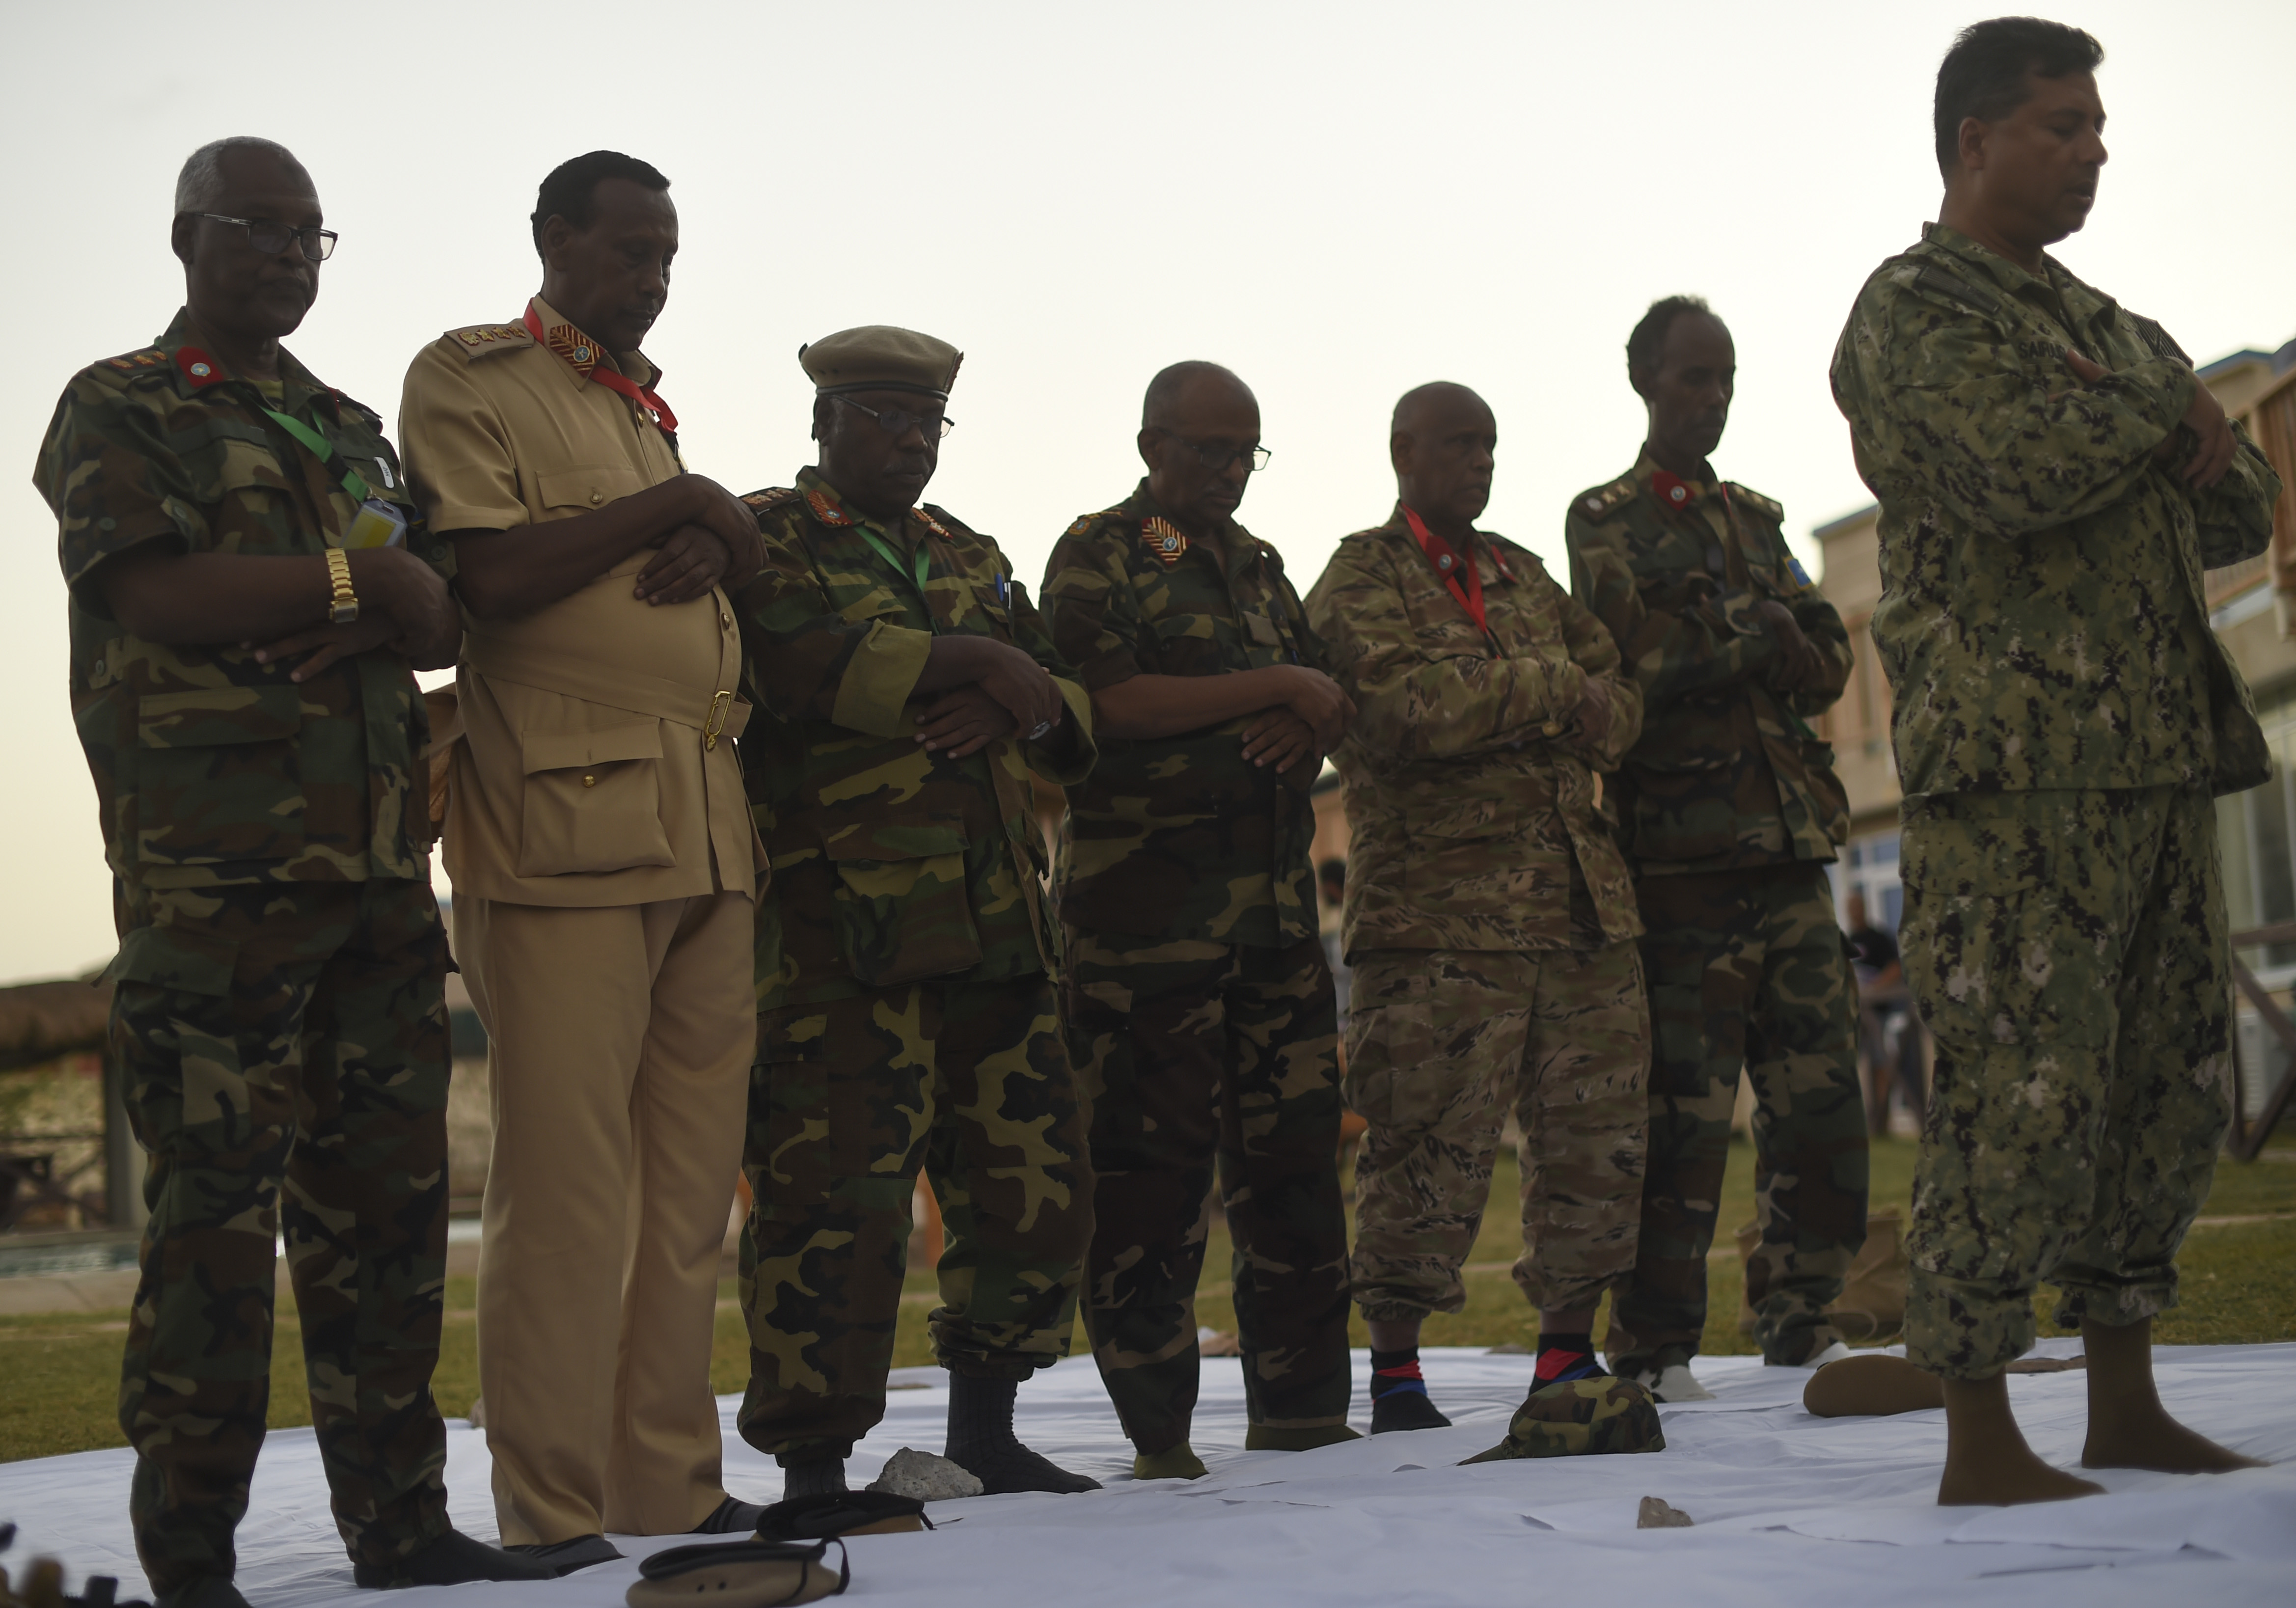 U.S. Navy Cmdr. Abuhena Saifulislam, U.S. Africa Command deputy command chaplain, leads the prayer at the Mogadishu International Airport, Mogadishu, Somalia, June 5, 2017. This was the first Iftar held between U.S. and Somali National Army military personnel. Additionally, it was the first led by a U.S. Imam, who is a leader in the Islamic faith. (U.S. Air Force Photo by Staff Sgt. Eboni Prince)